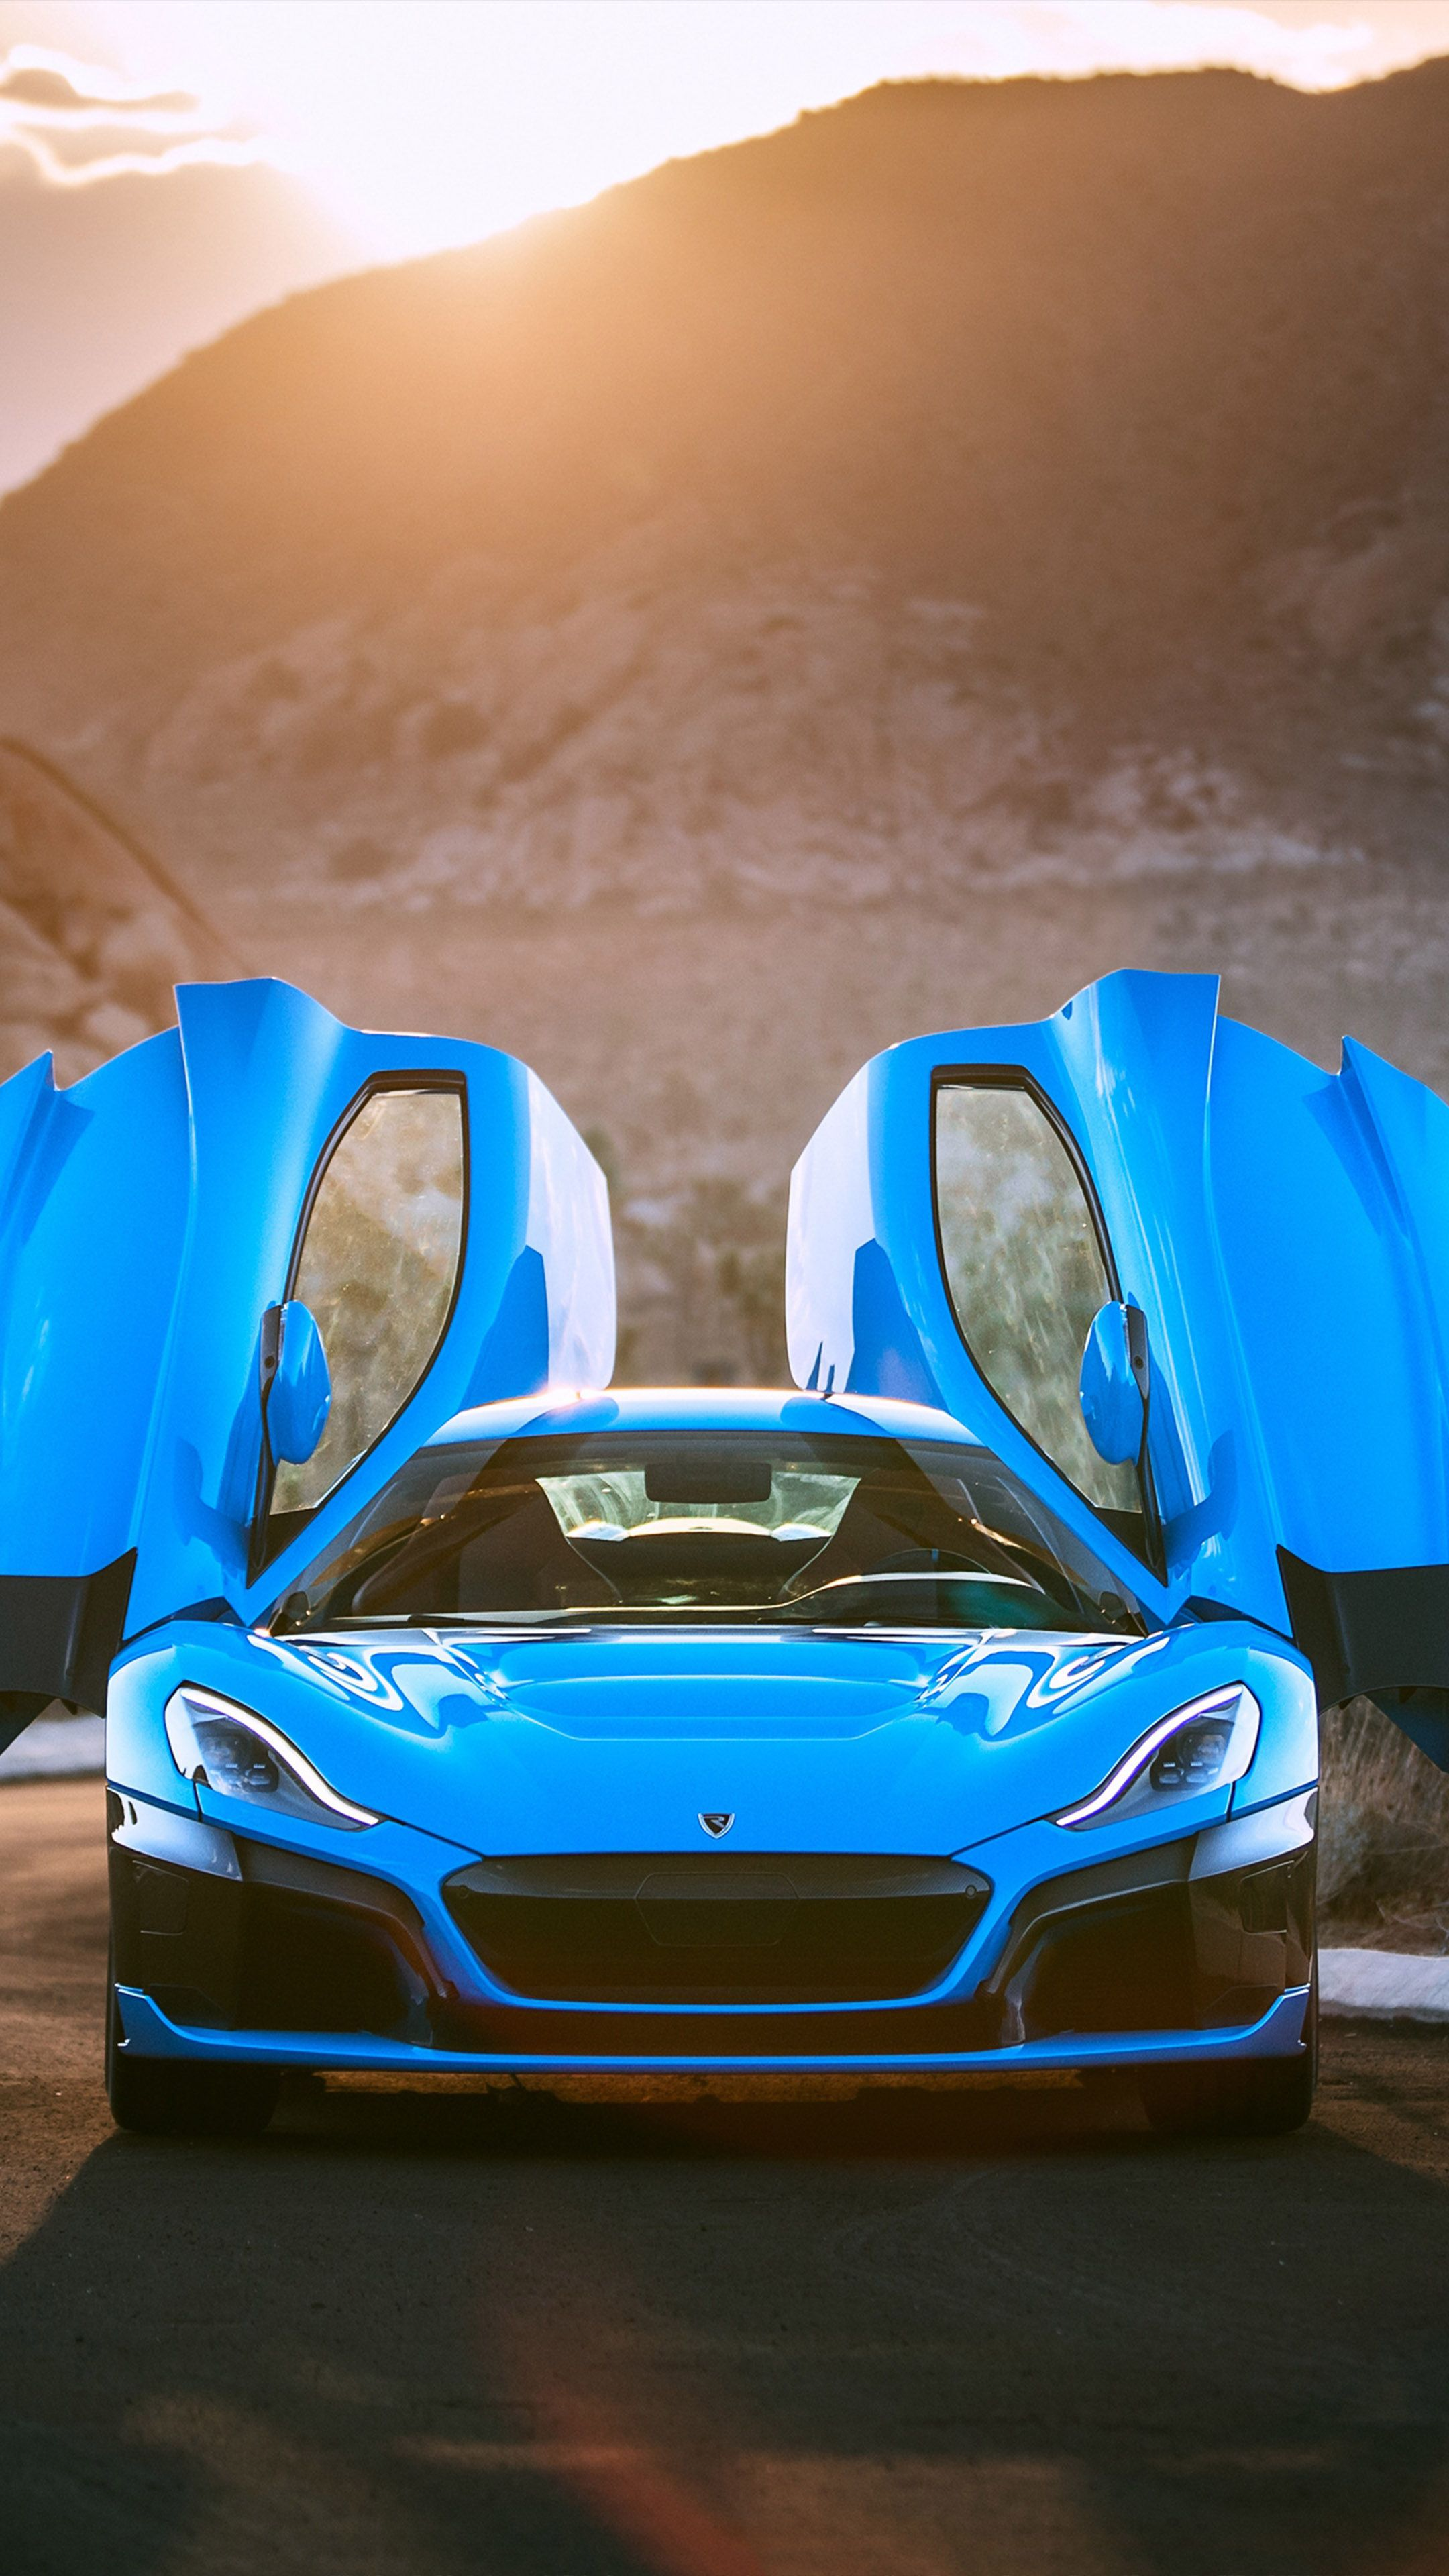 Galaxy Tablet Exotic Car Colorful Wallpaper